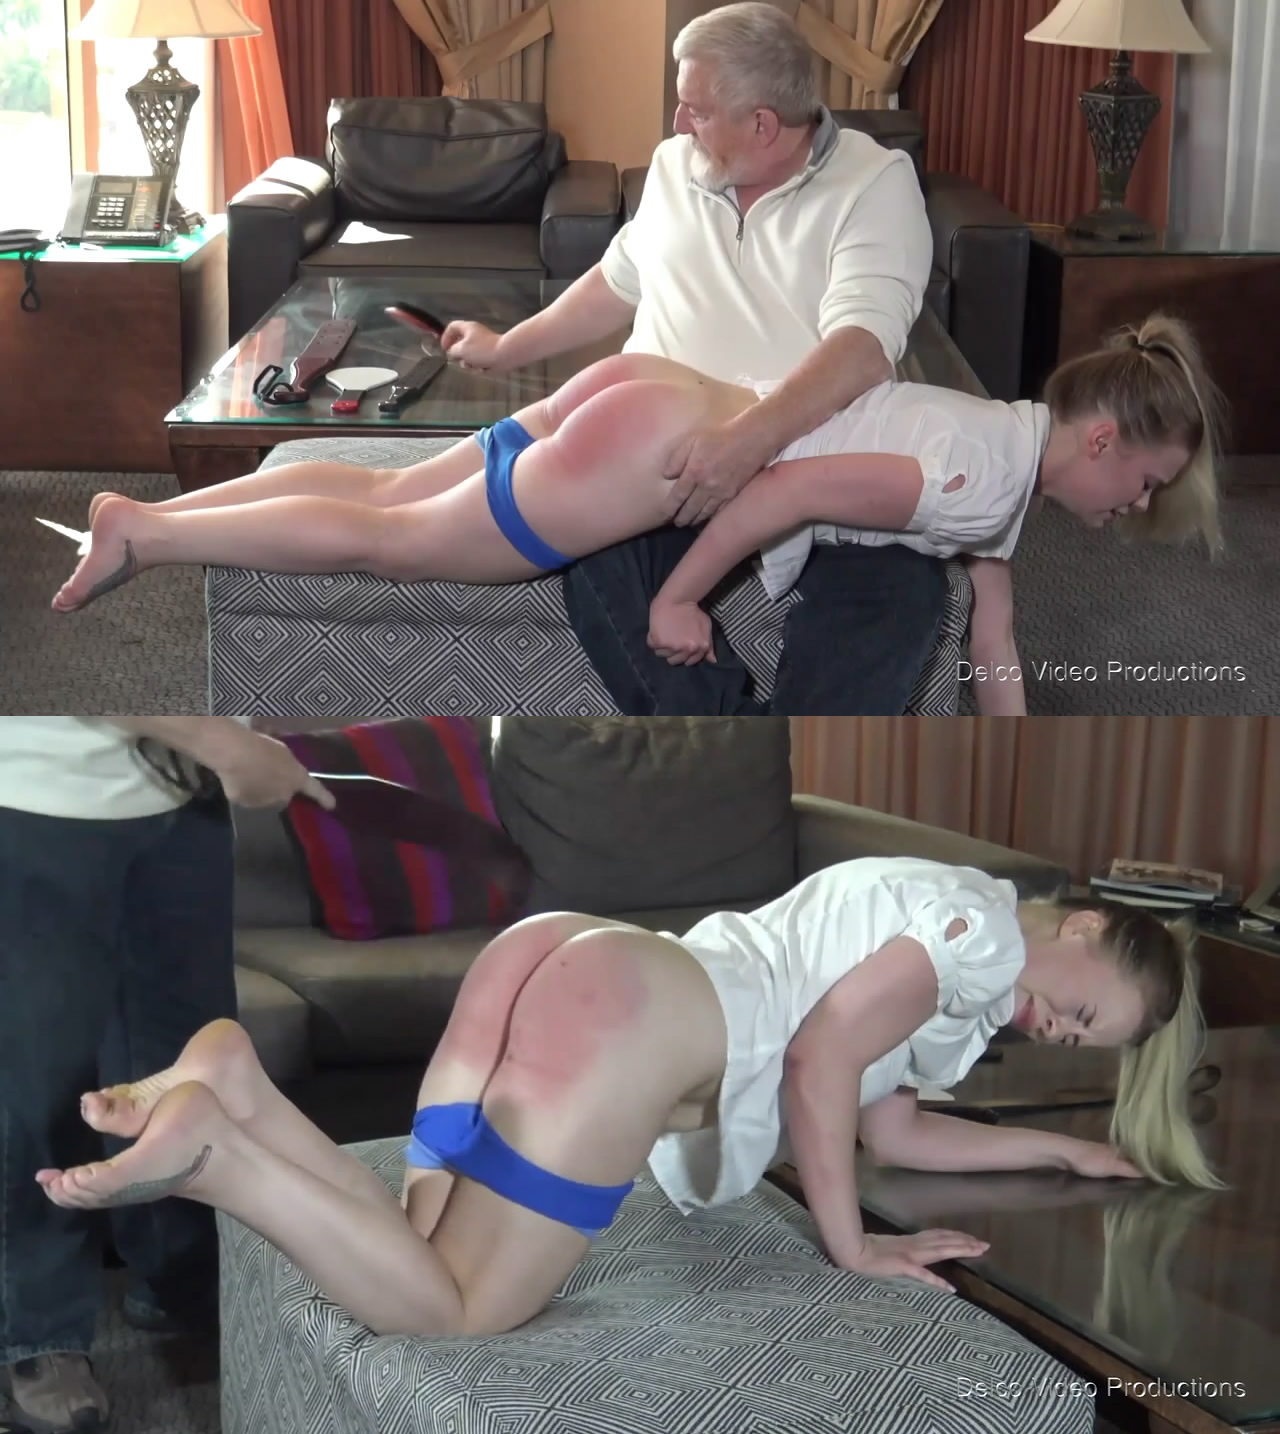 Delco Video Productions – MP4/HD – Mr Rob, Stevie Rose – Stevie's Real Discipline